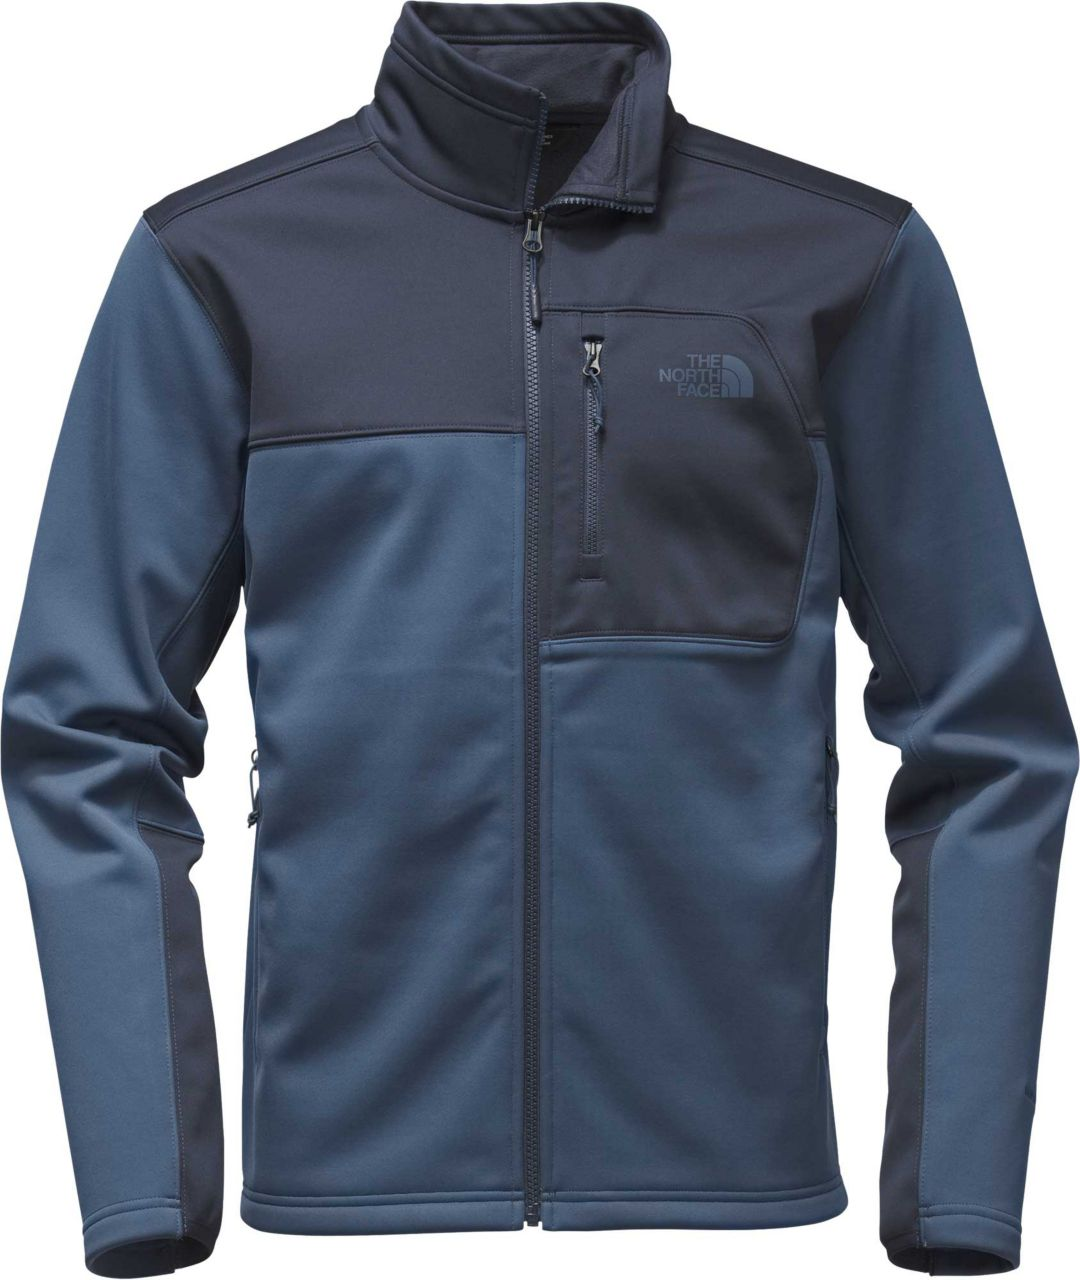 6426152af The North Face Men's Apex Risor Full Zip Jacket